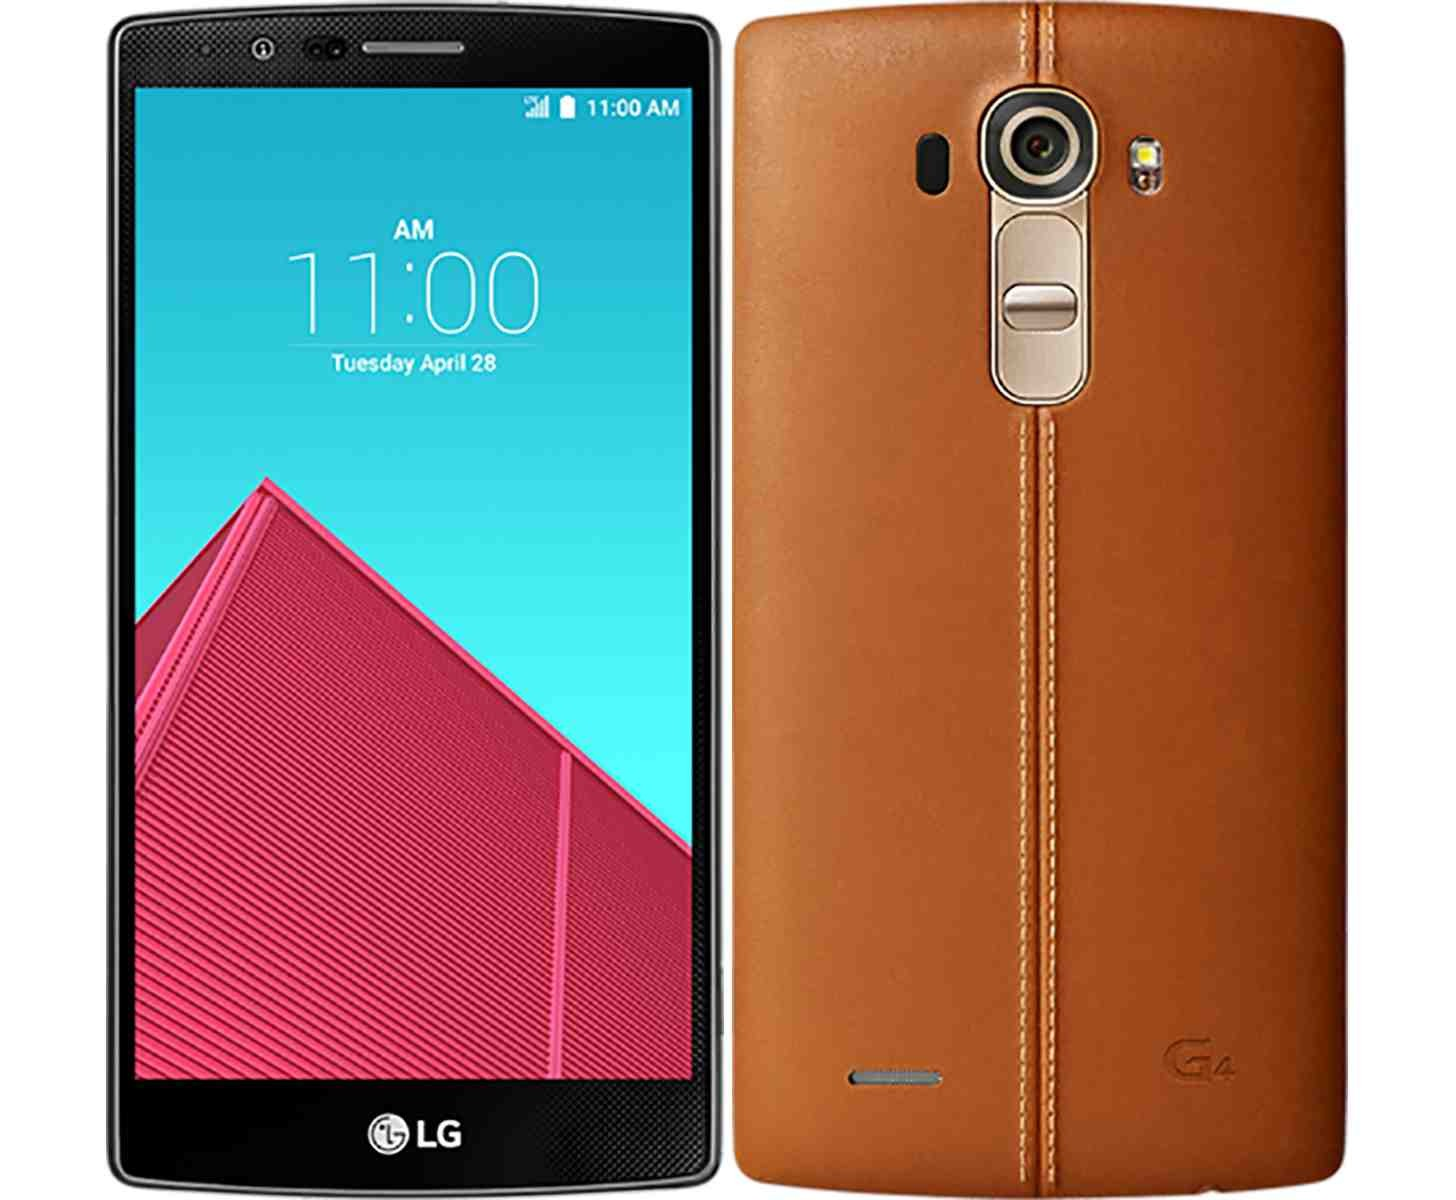 Best Smartphone Deals Today: 32 GB Unlocked LG G4 at $329.99, 32 GB Refurbished Motorola Droid Turbo at $199.99